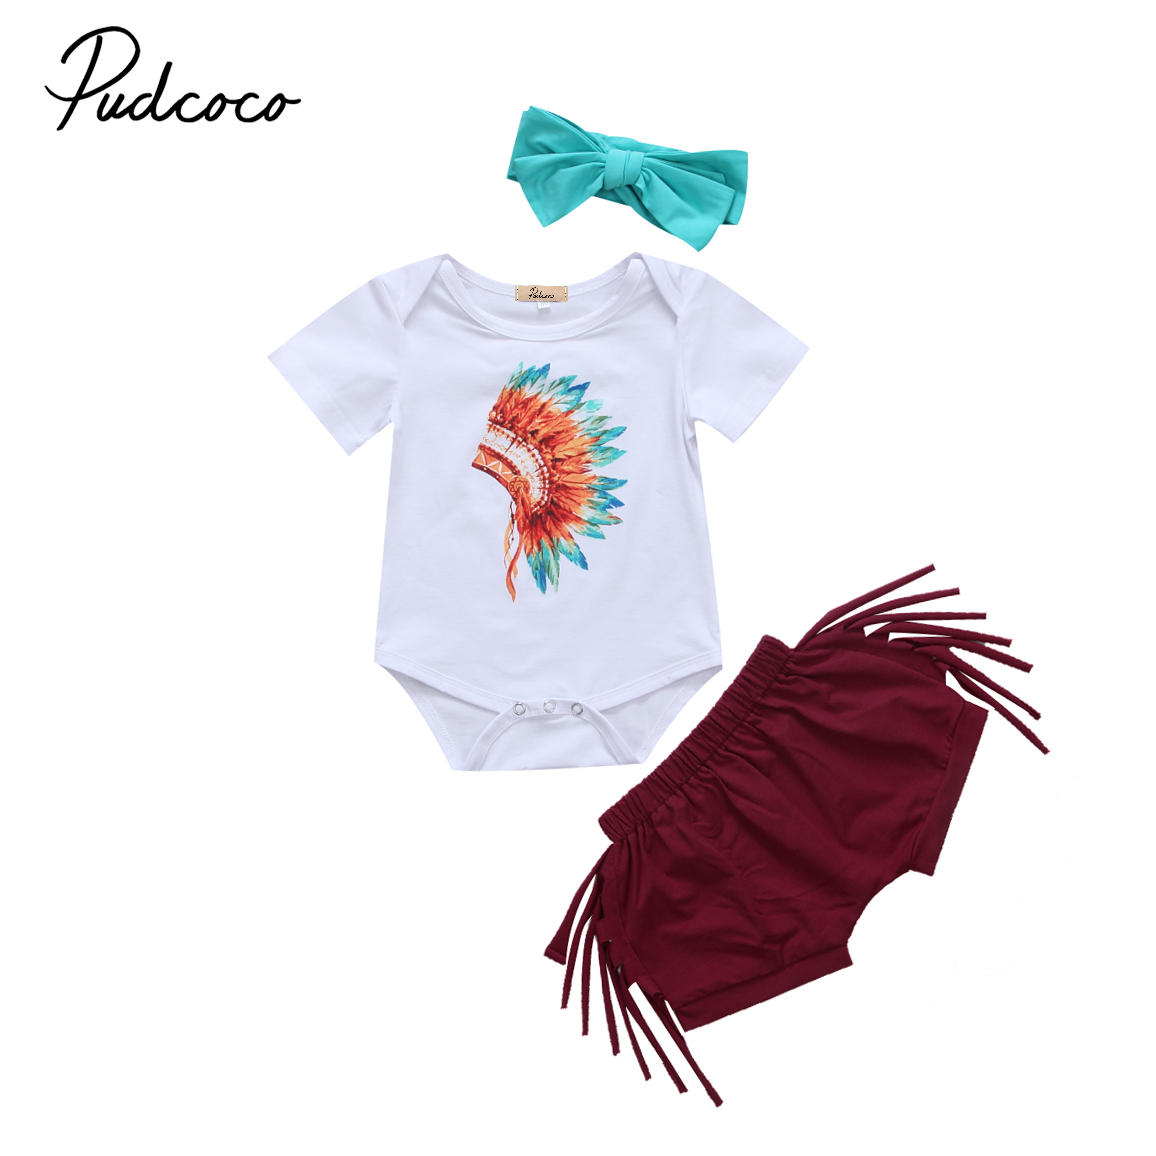 2017 Brand New Newborn Toddler Infant Baby Girls Feather Tassels Outfits Short Sleeve Romper Bottoms Headband Tribal Style 3pcs baby girl 1st birthday outfits short sleeve infant clothing sets lace romper dress headband shoe toddler tutu set baby s clothes